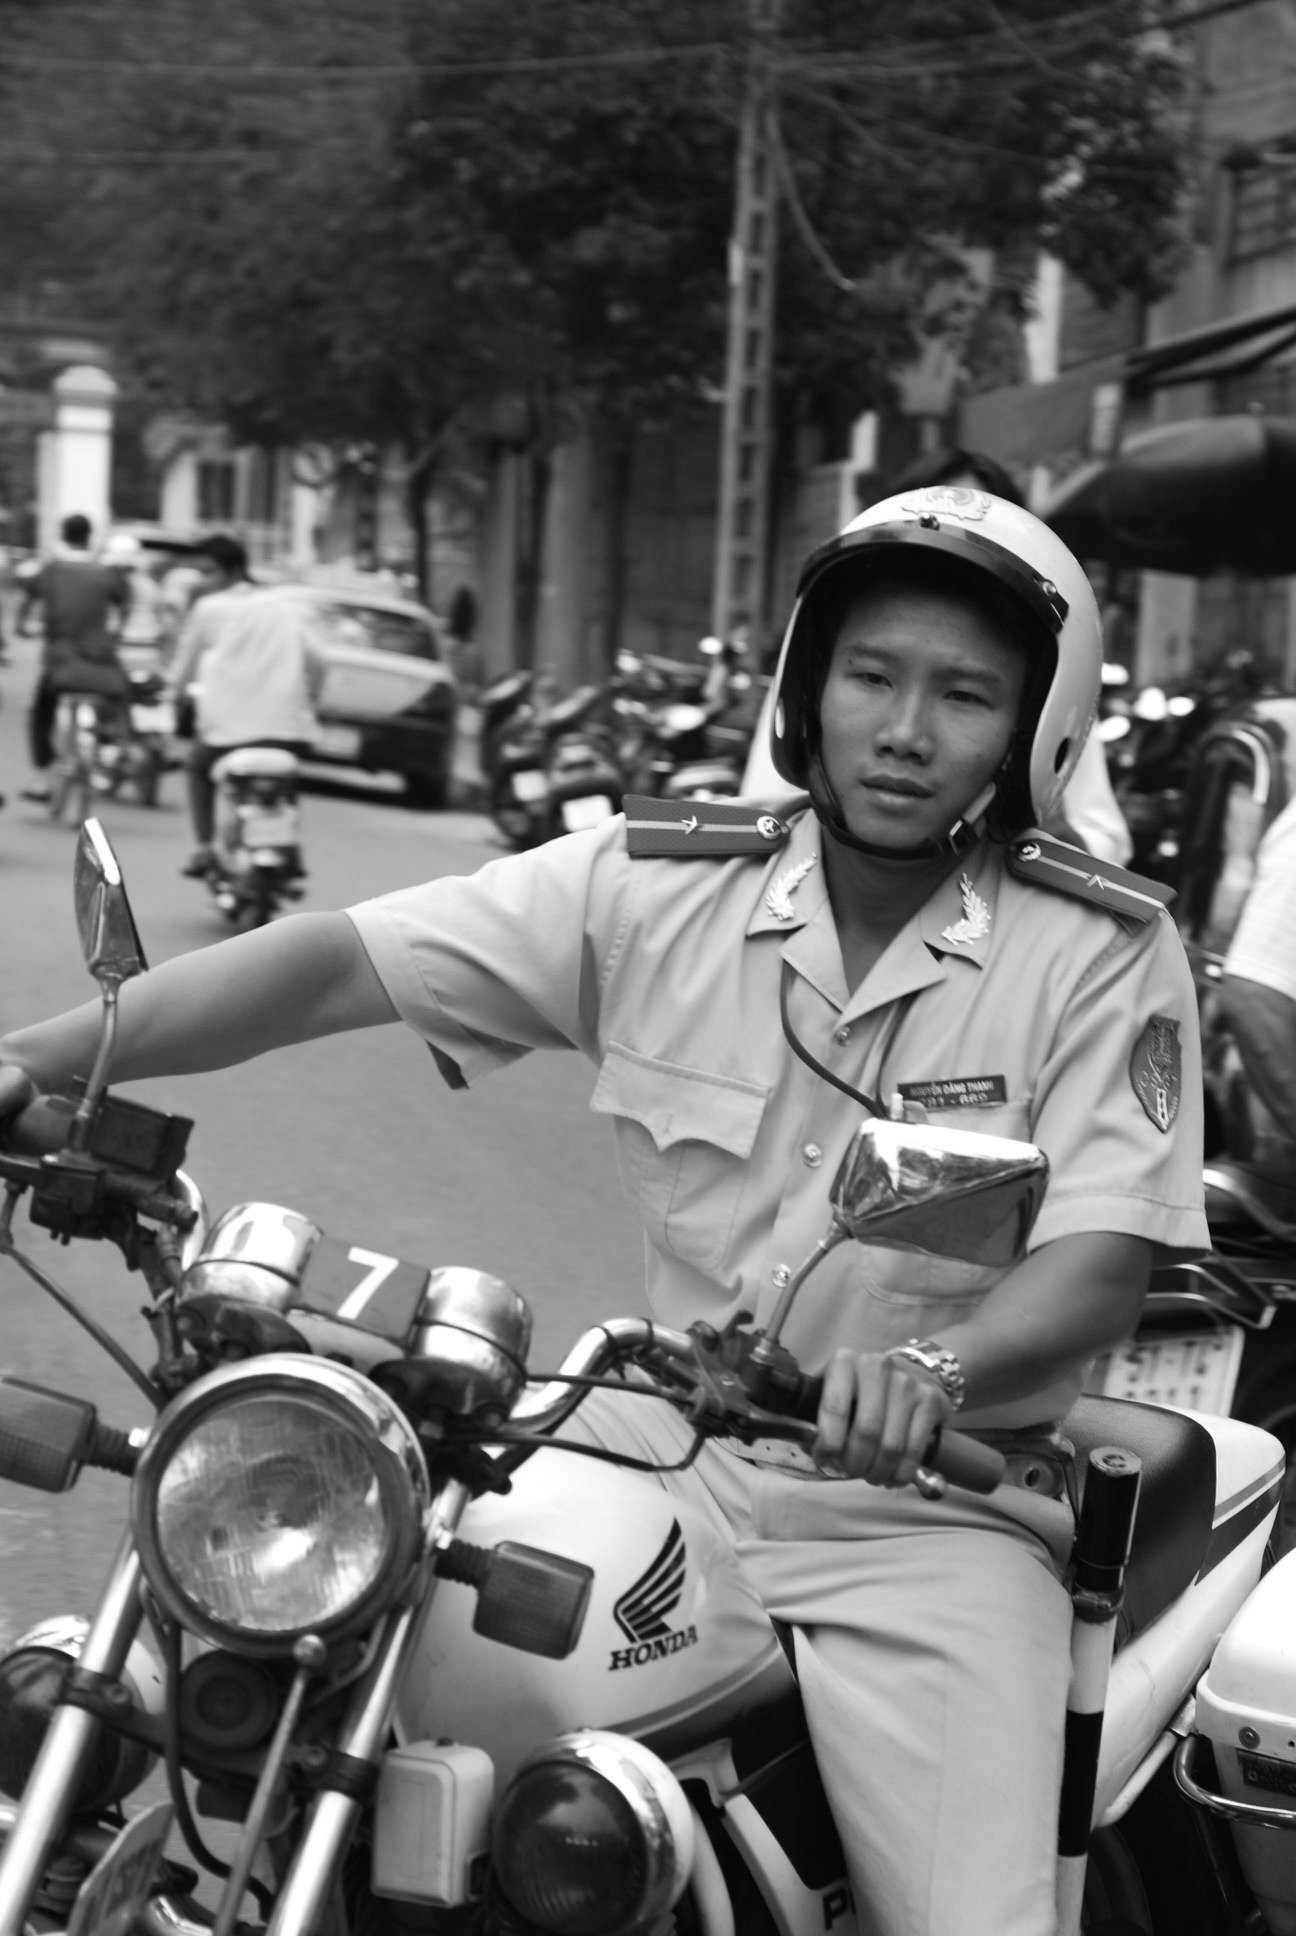 11 years ago Saigon's CSGT photo thieves writer: The miracle of proof that Surrender is good is to give up - photo 9.